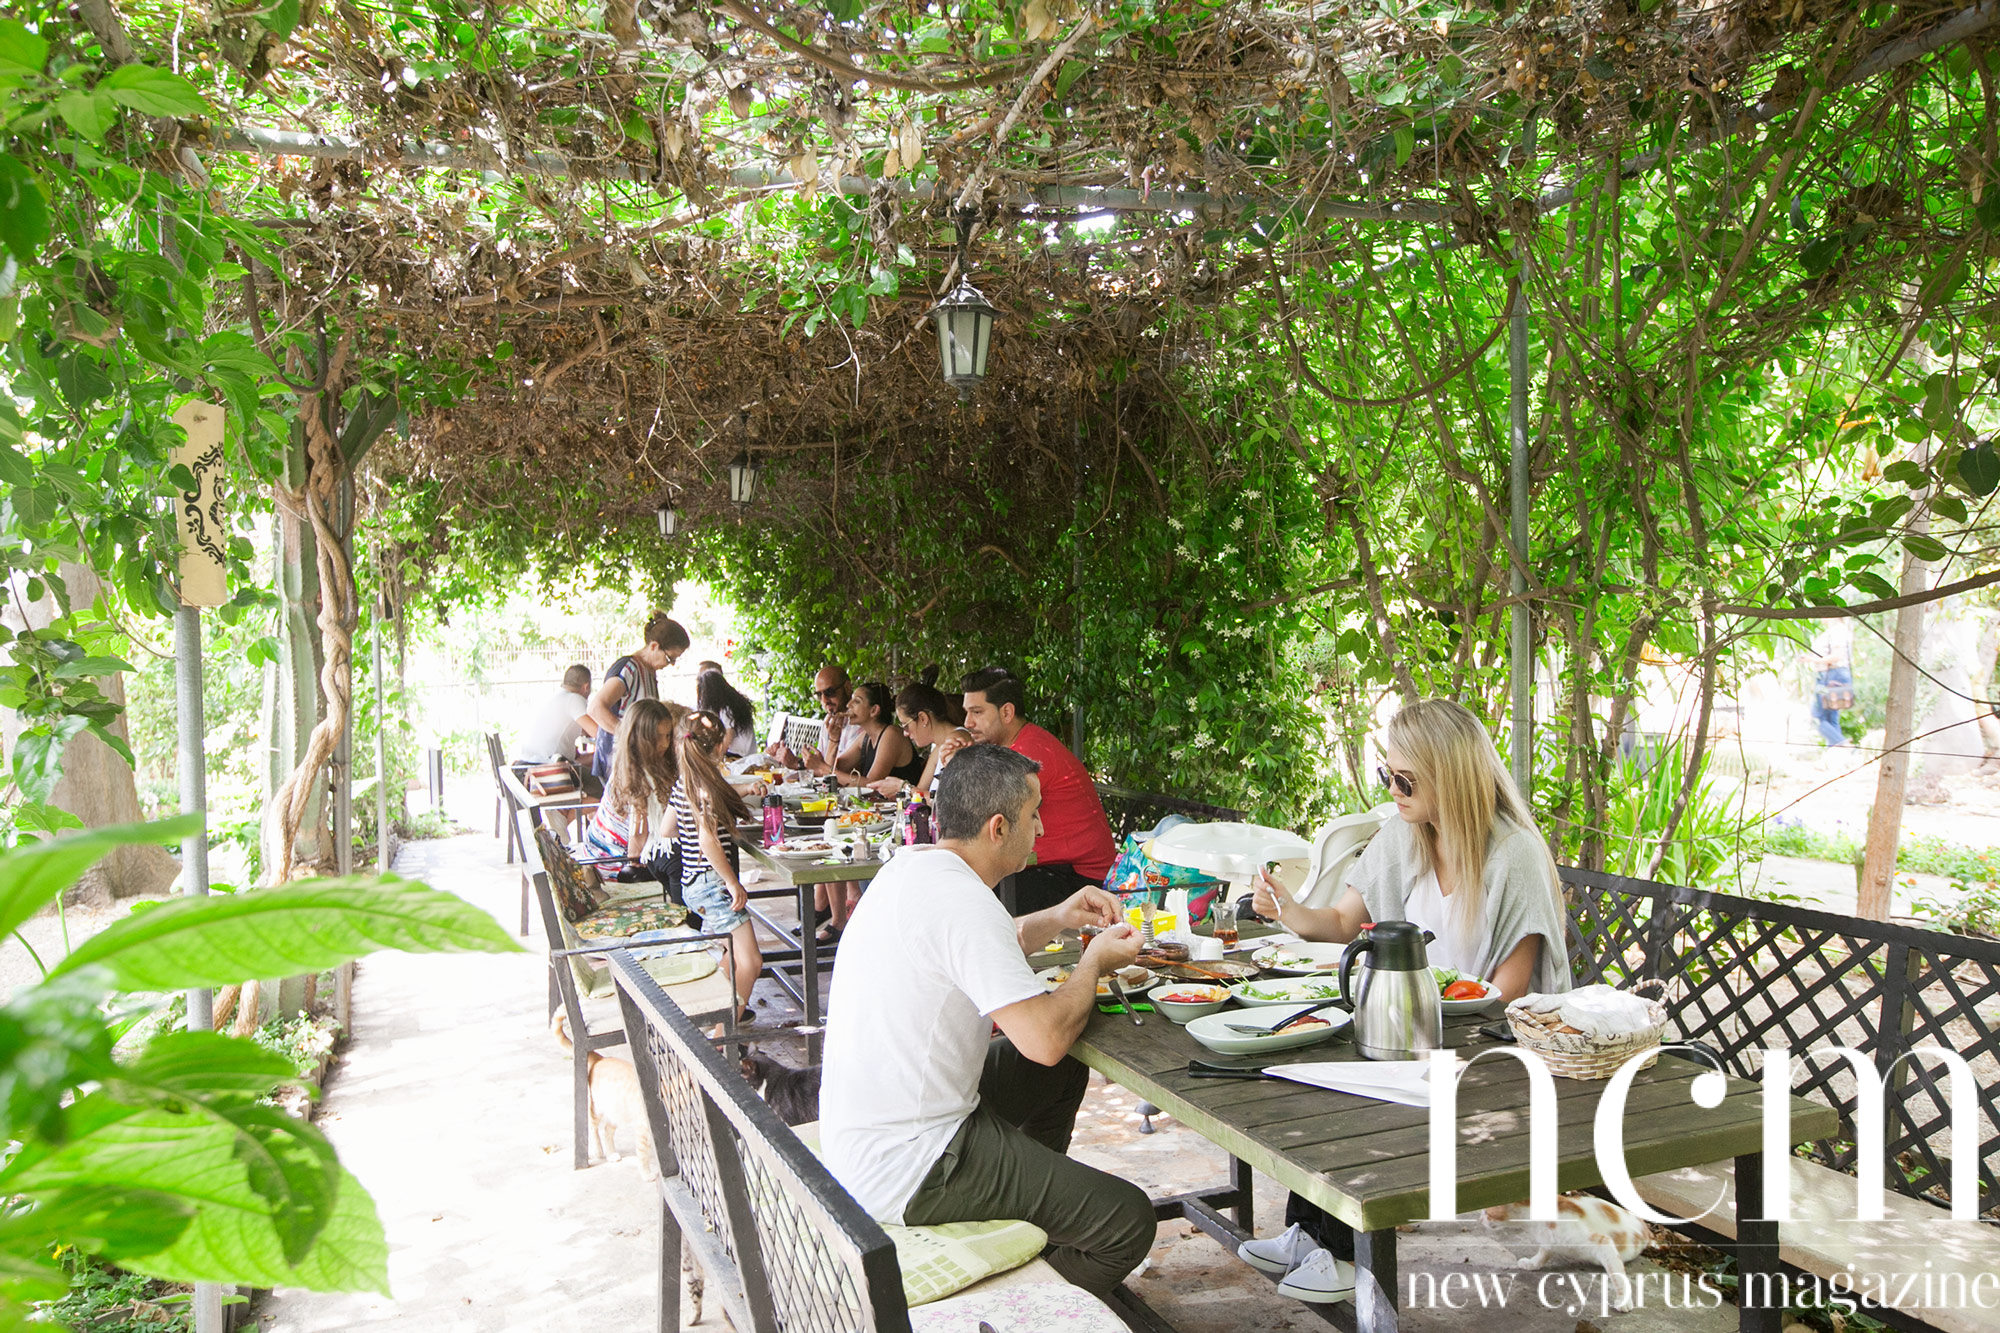 Start the day with breakfast in the botanic garden